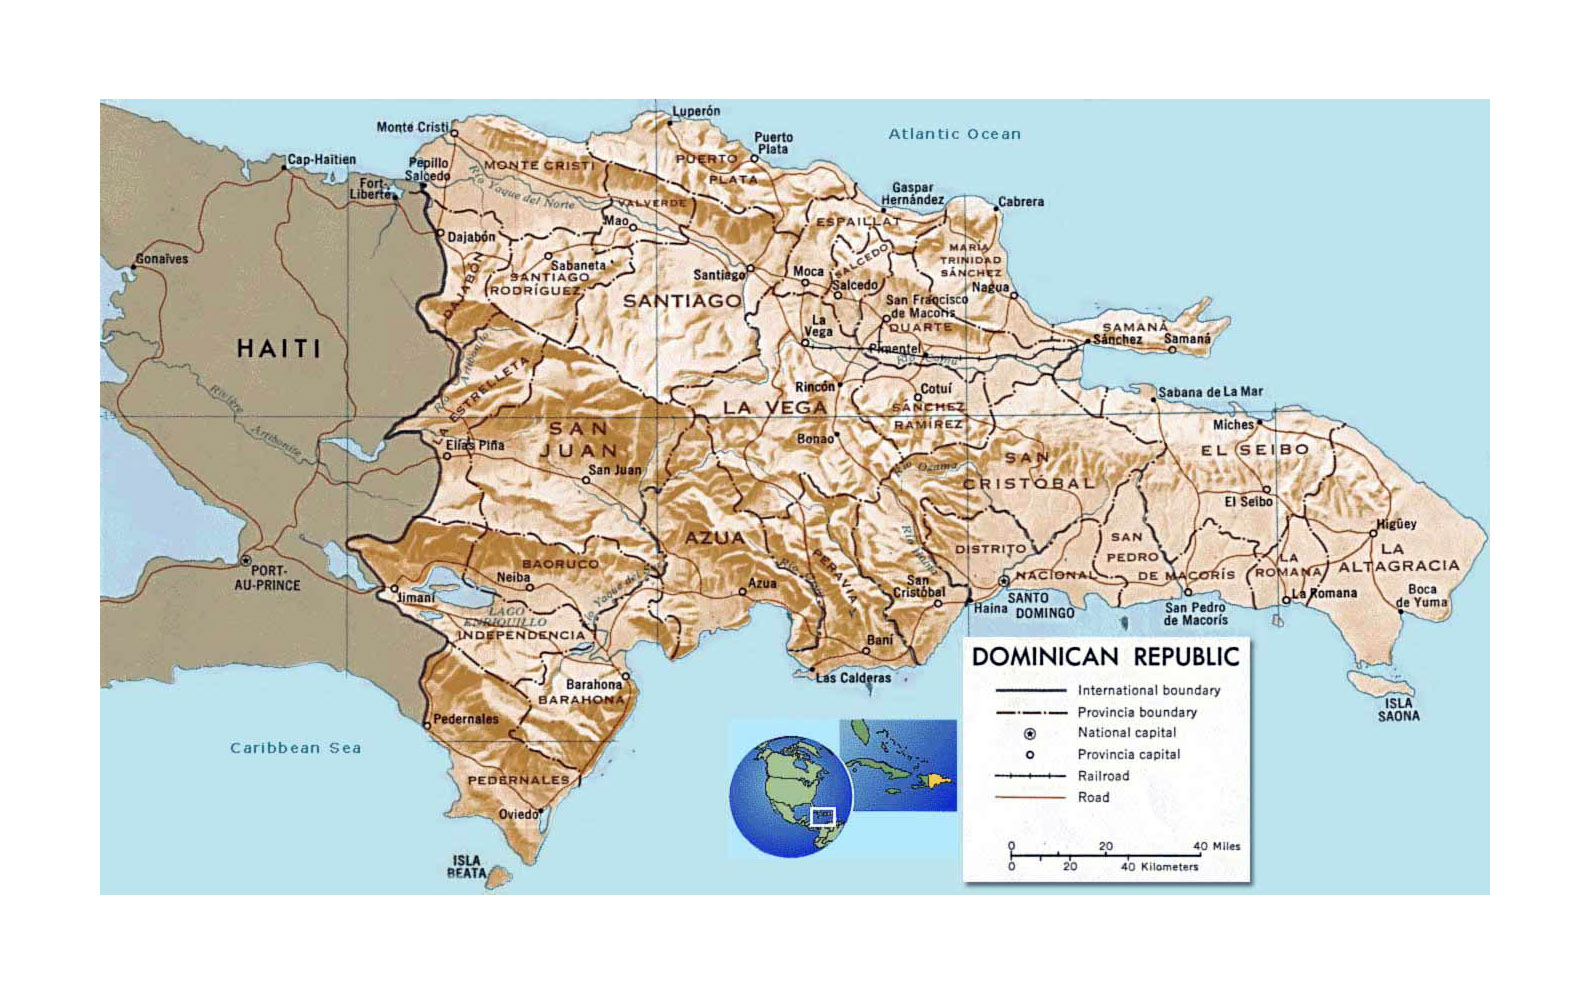 Detailed political and administrative map of Dominican Republic with